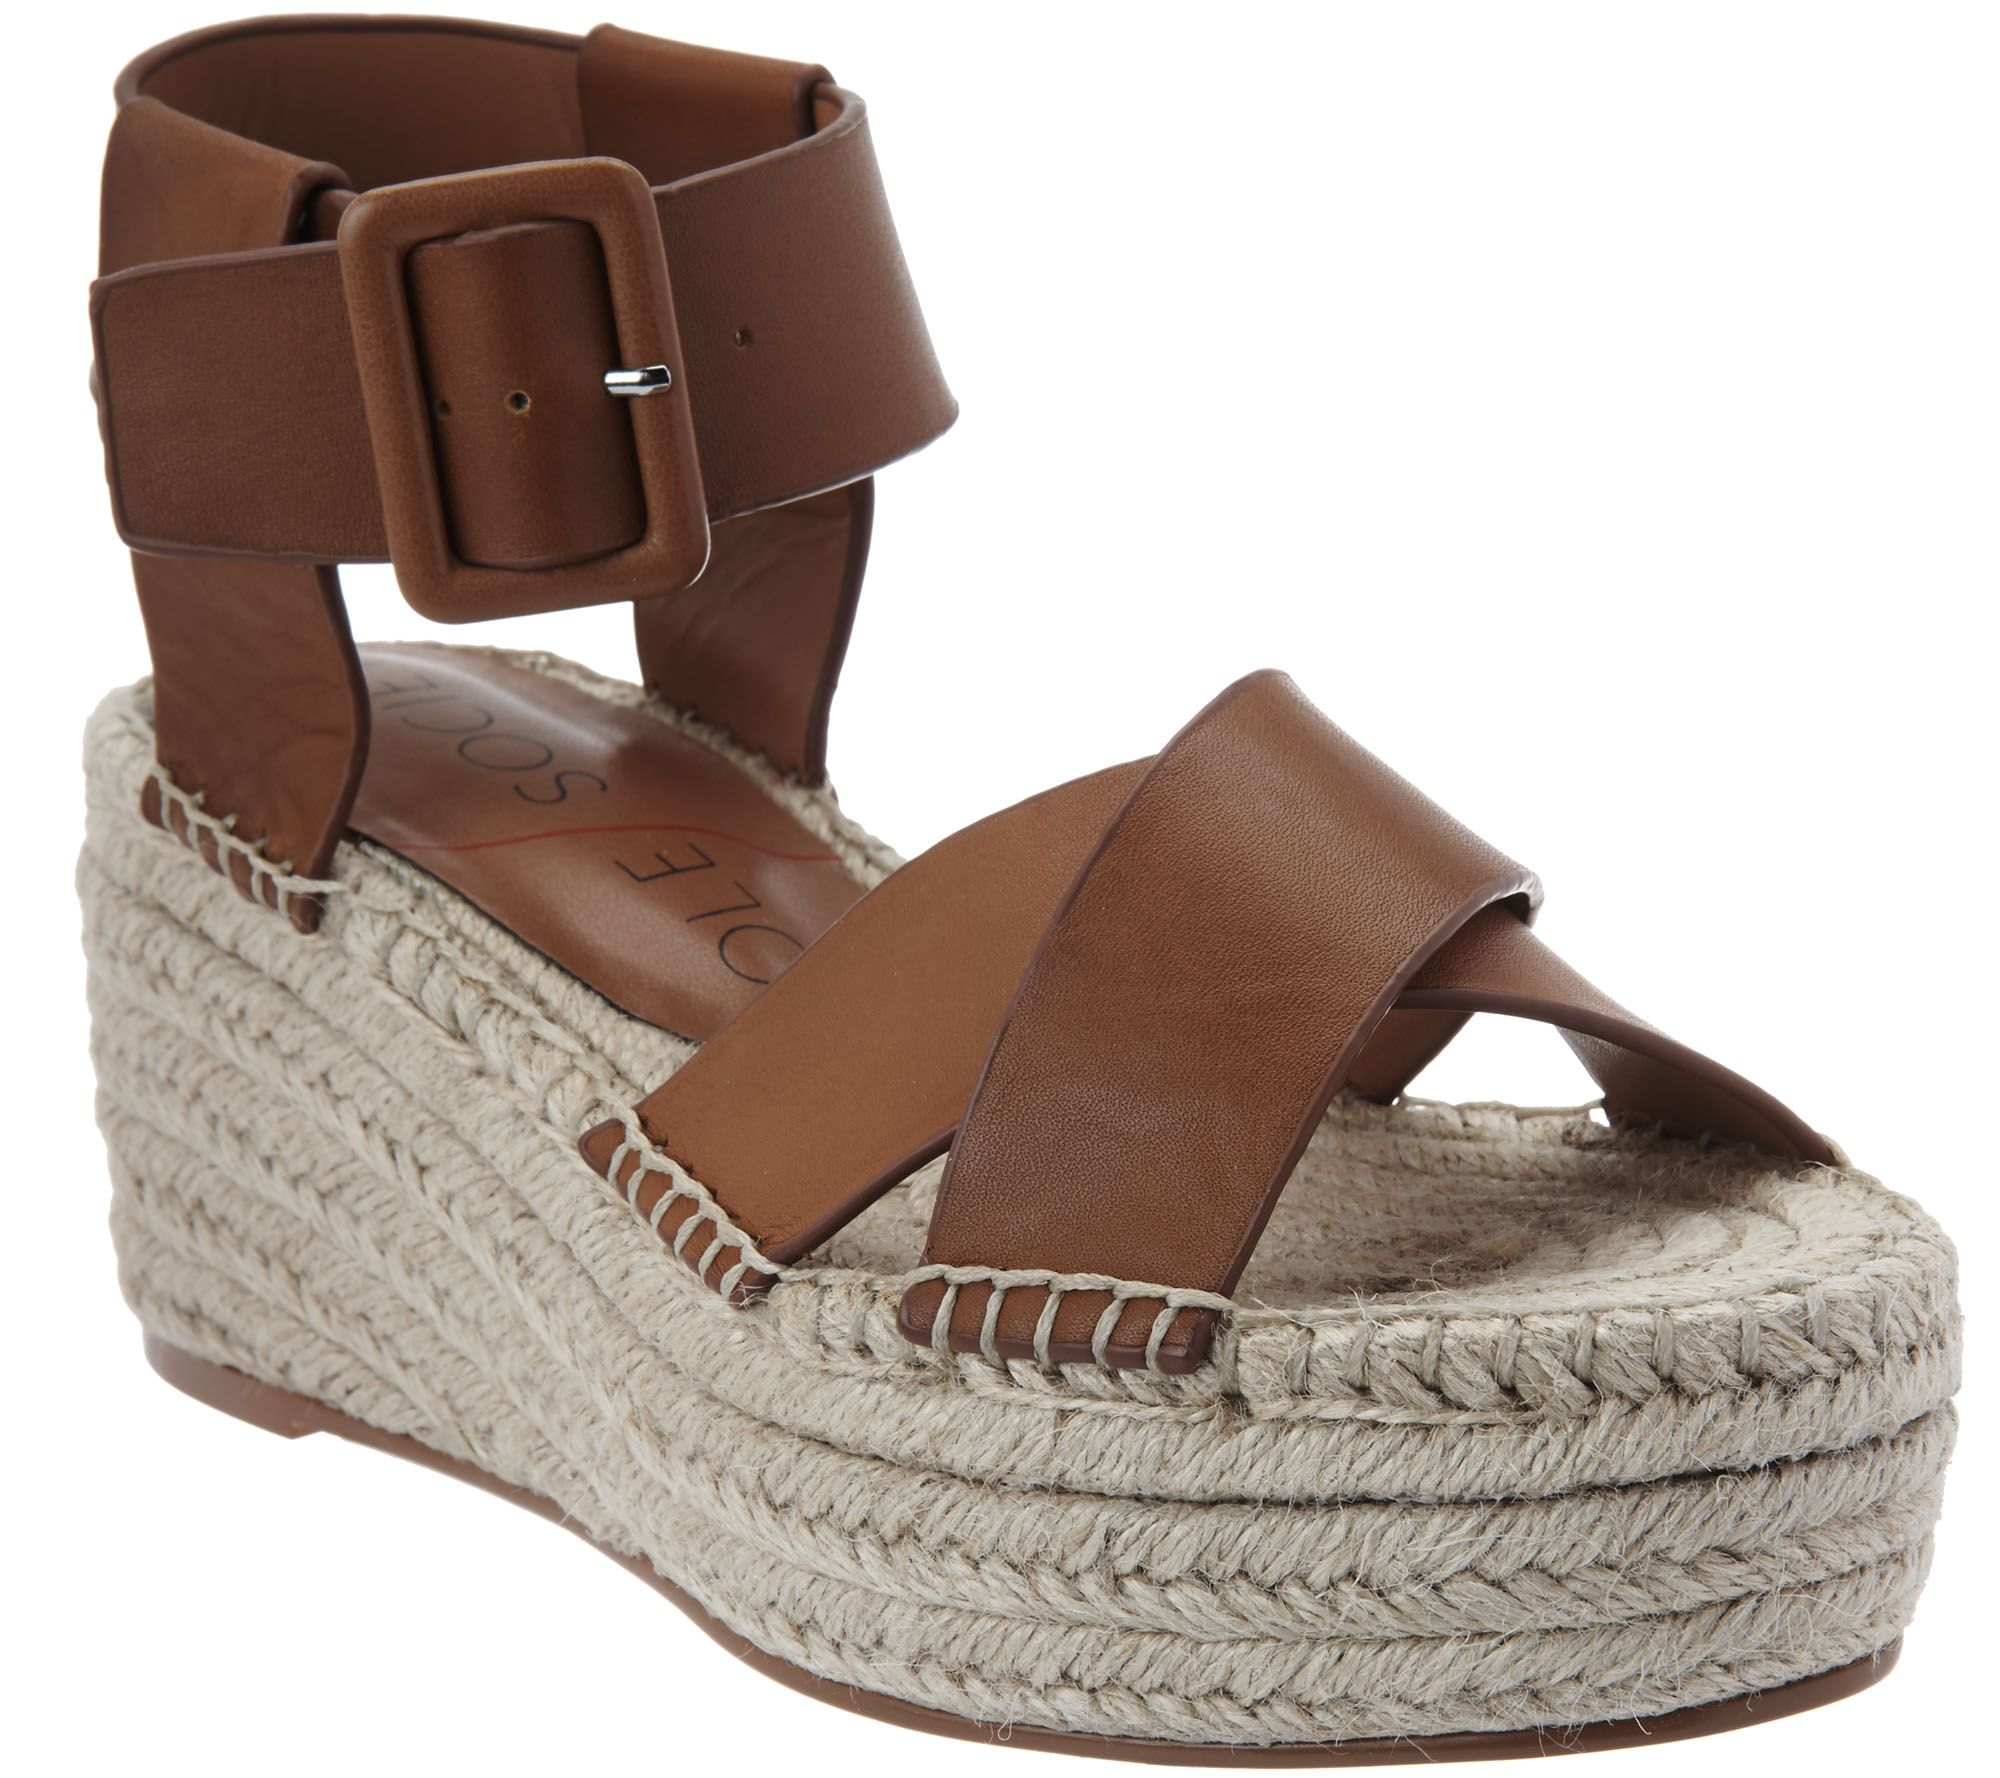 6443c7b905f7 Sole Society Leather Espadrille Platform Wedges - Audrina - Page 1 — QVC.com